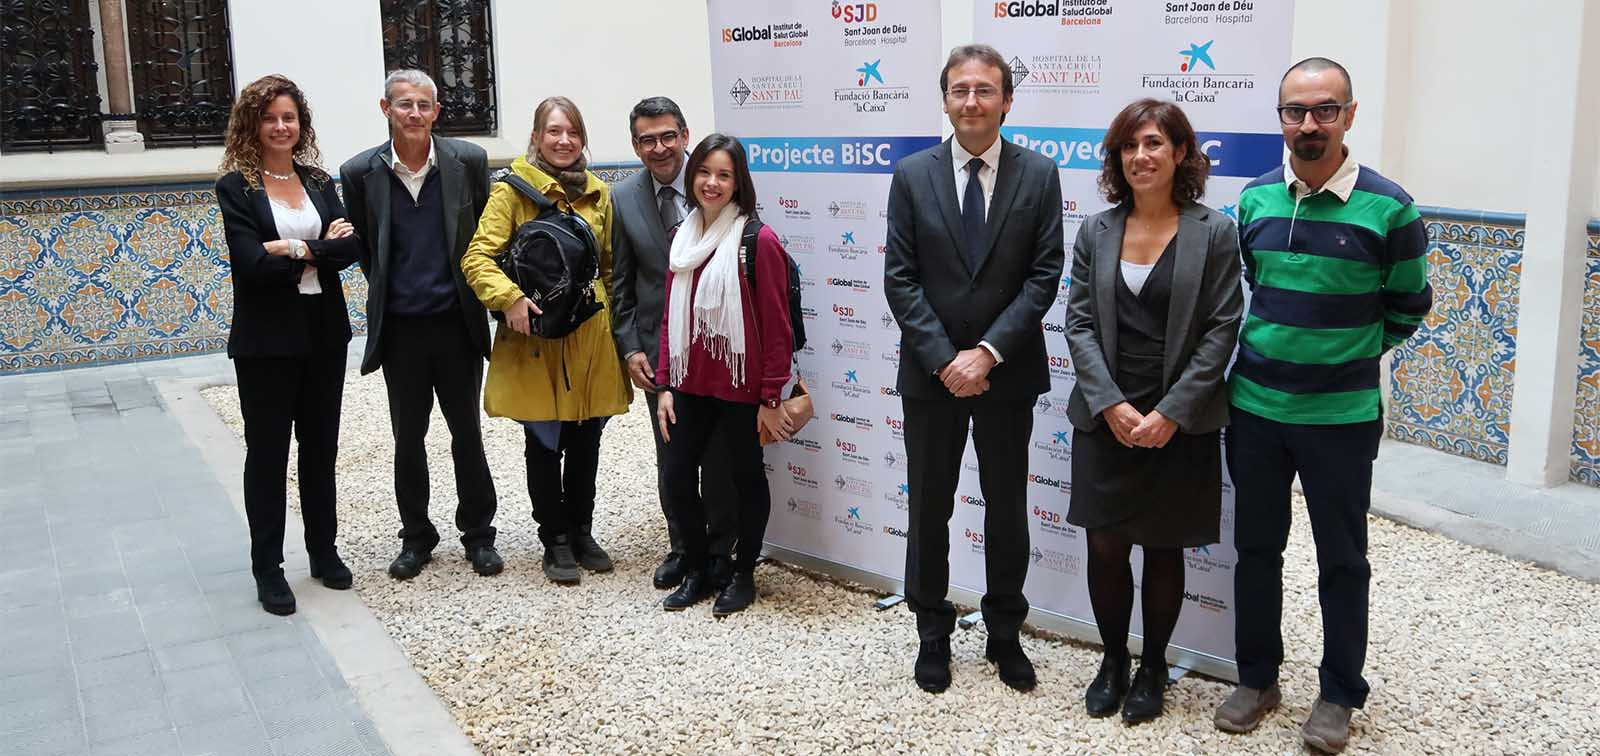 1,200 Pregnant Women in Barcelona Will Participate in One of the Largest Studies on Air Pollution and Pregnancy